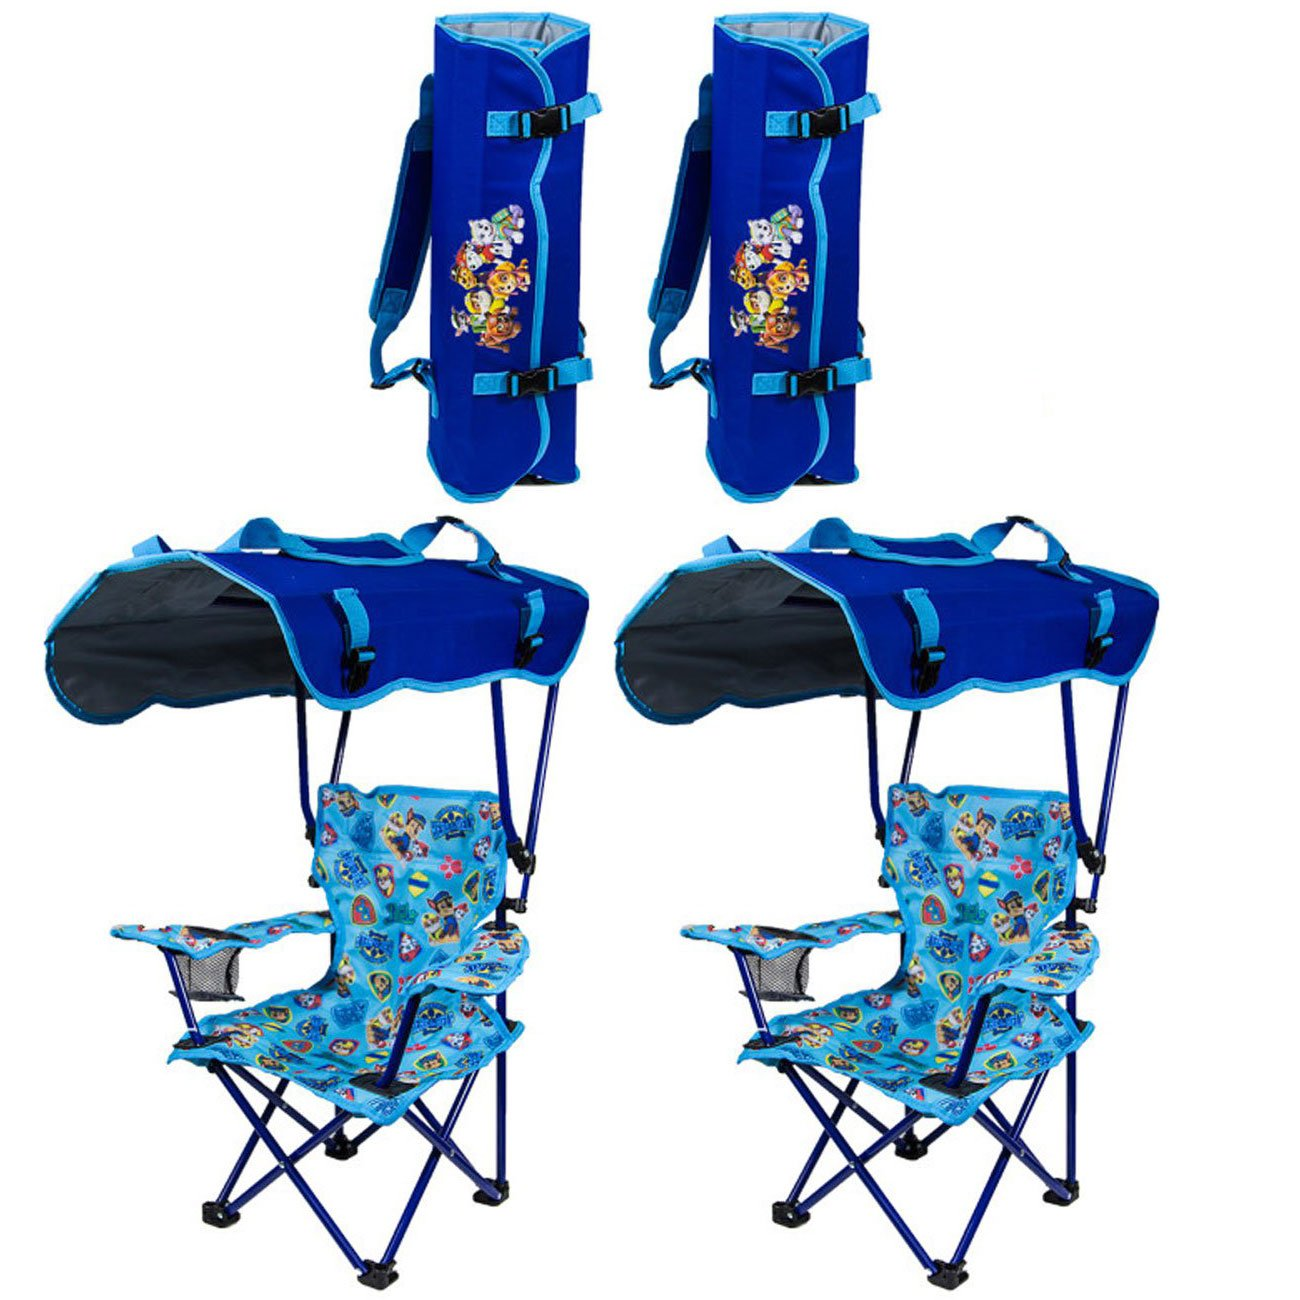 Superb Details About Kelsyus Kids Paw Patrol Portable Folding Kids Canopy Lounge Chair 2 Pack Pdpeps Interior Chair Design Pdpepsorg